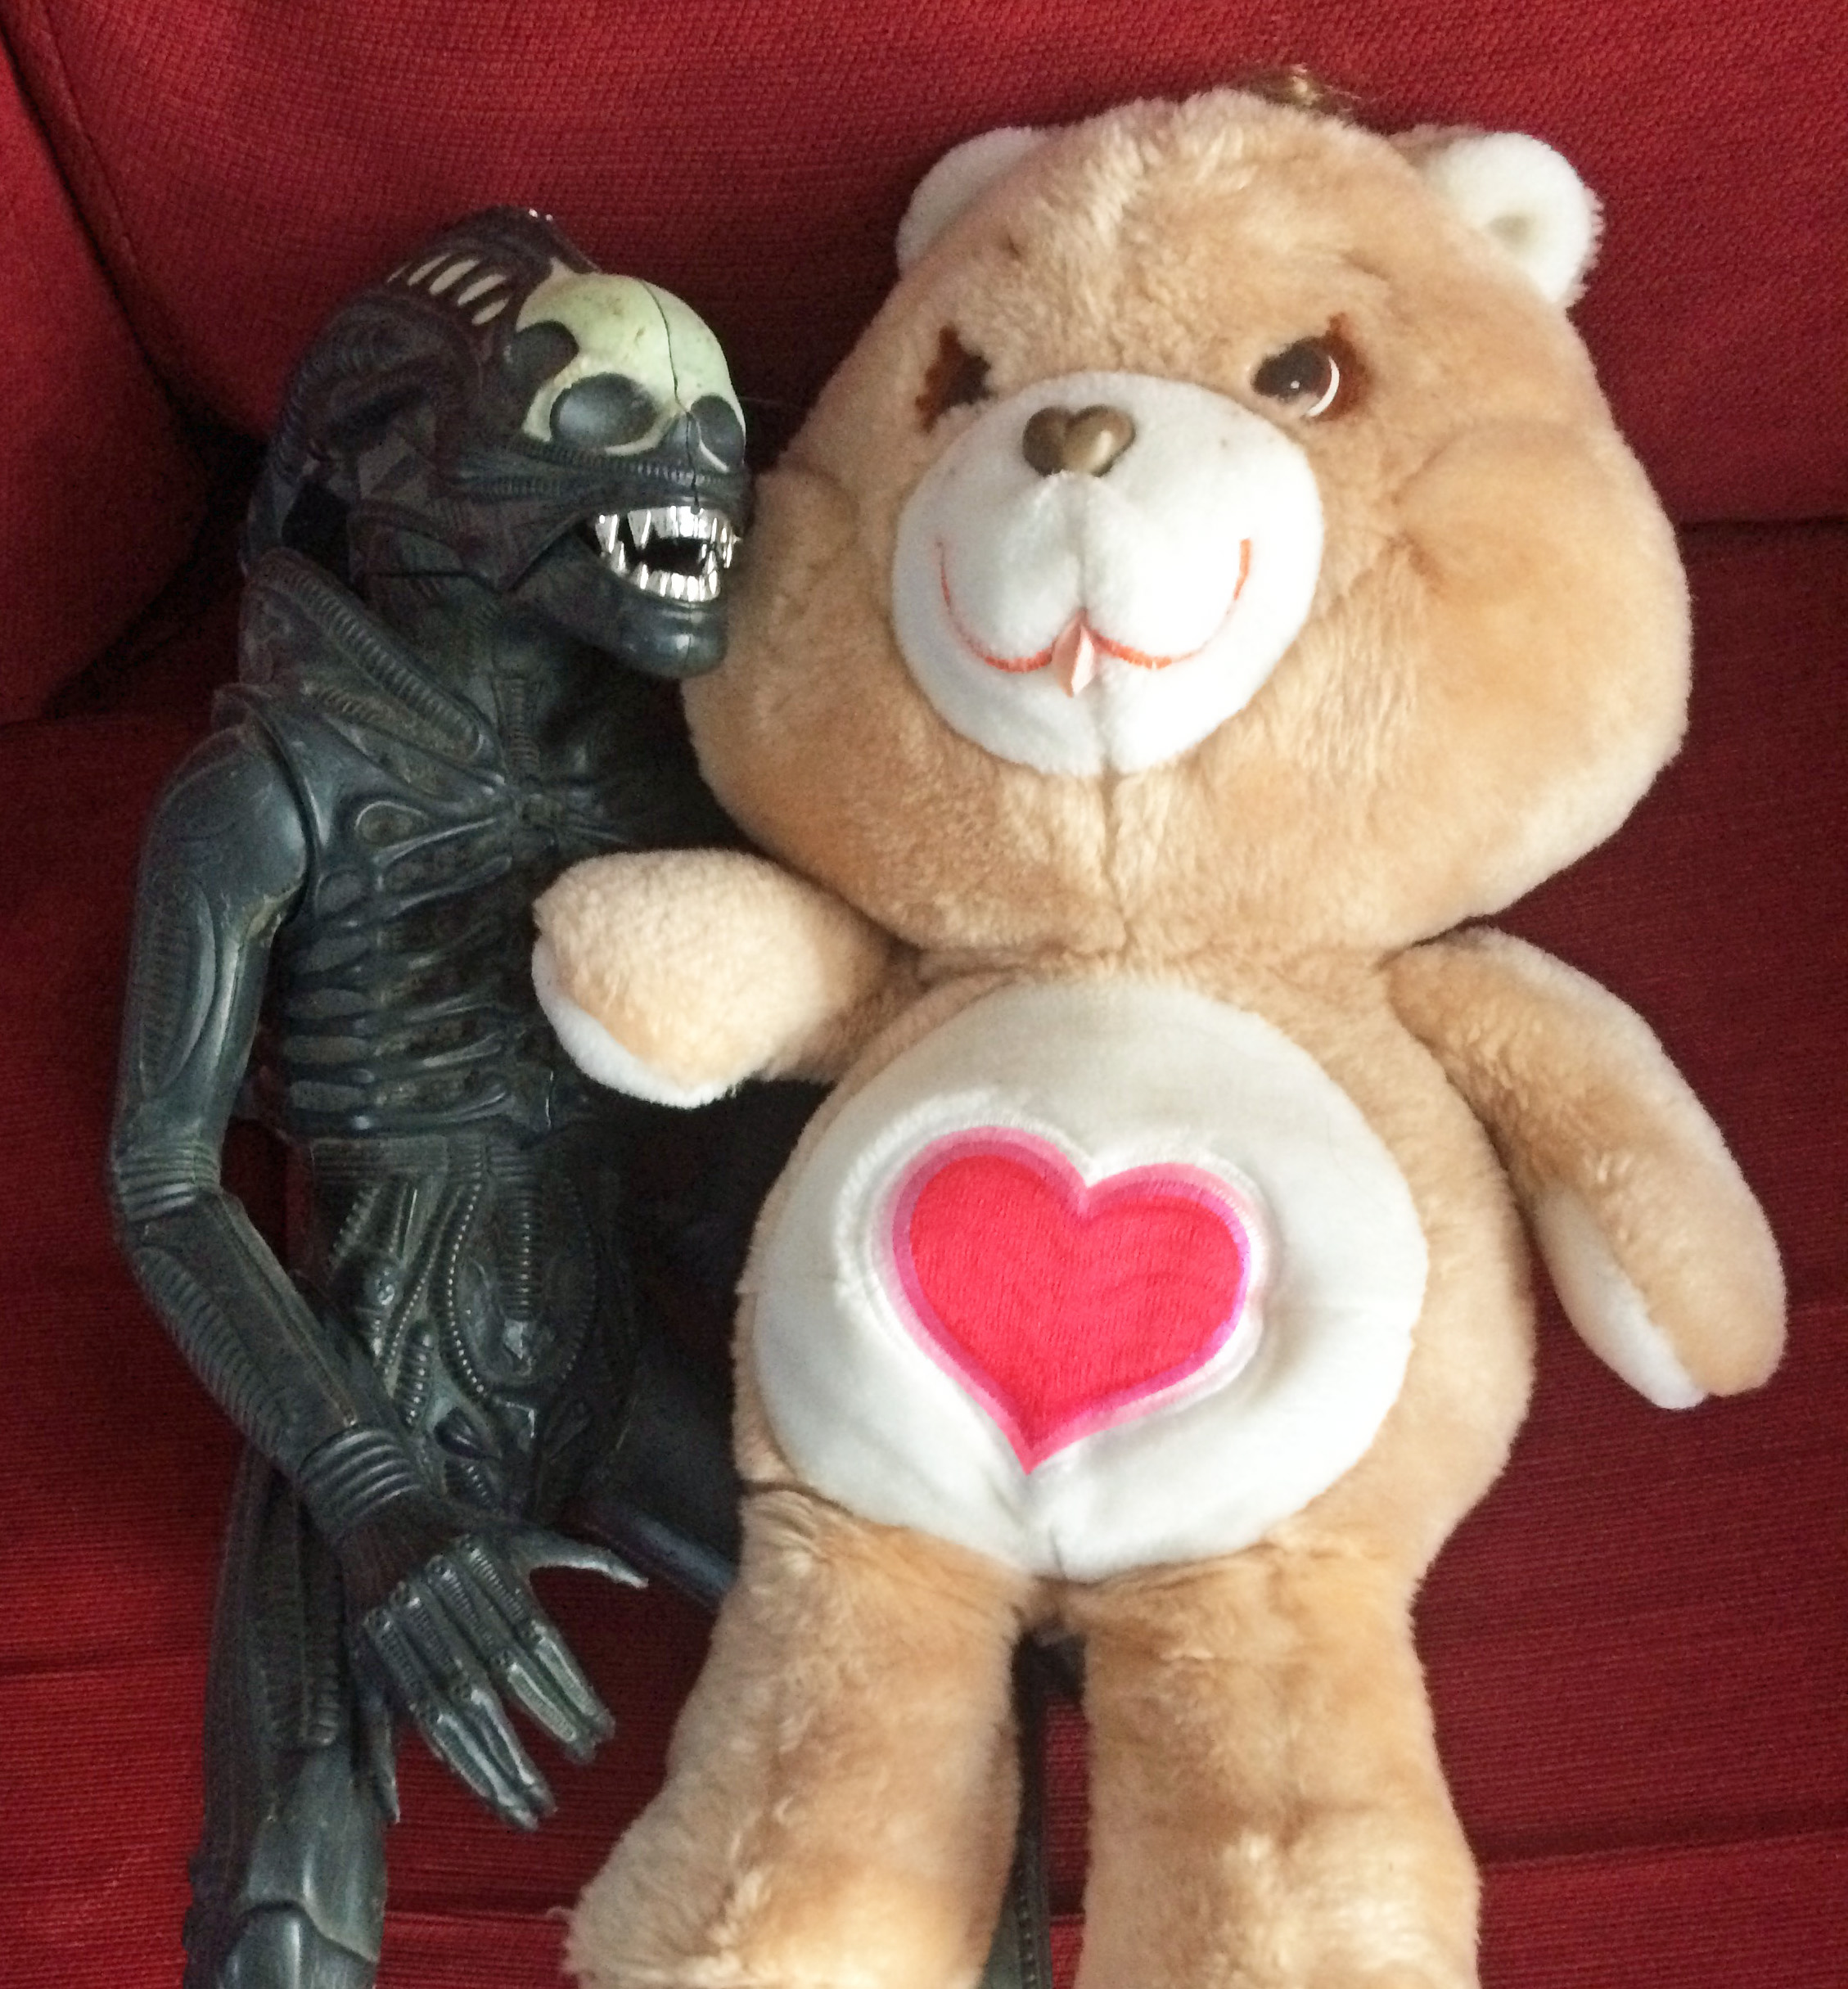 alien-and-care-bear